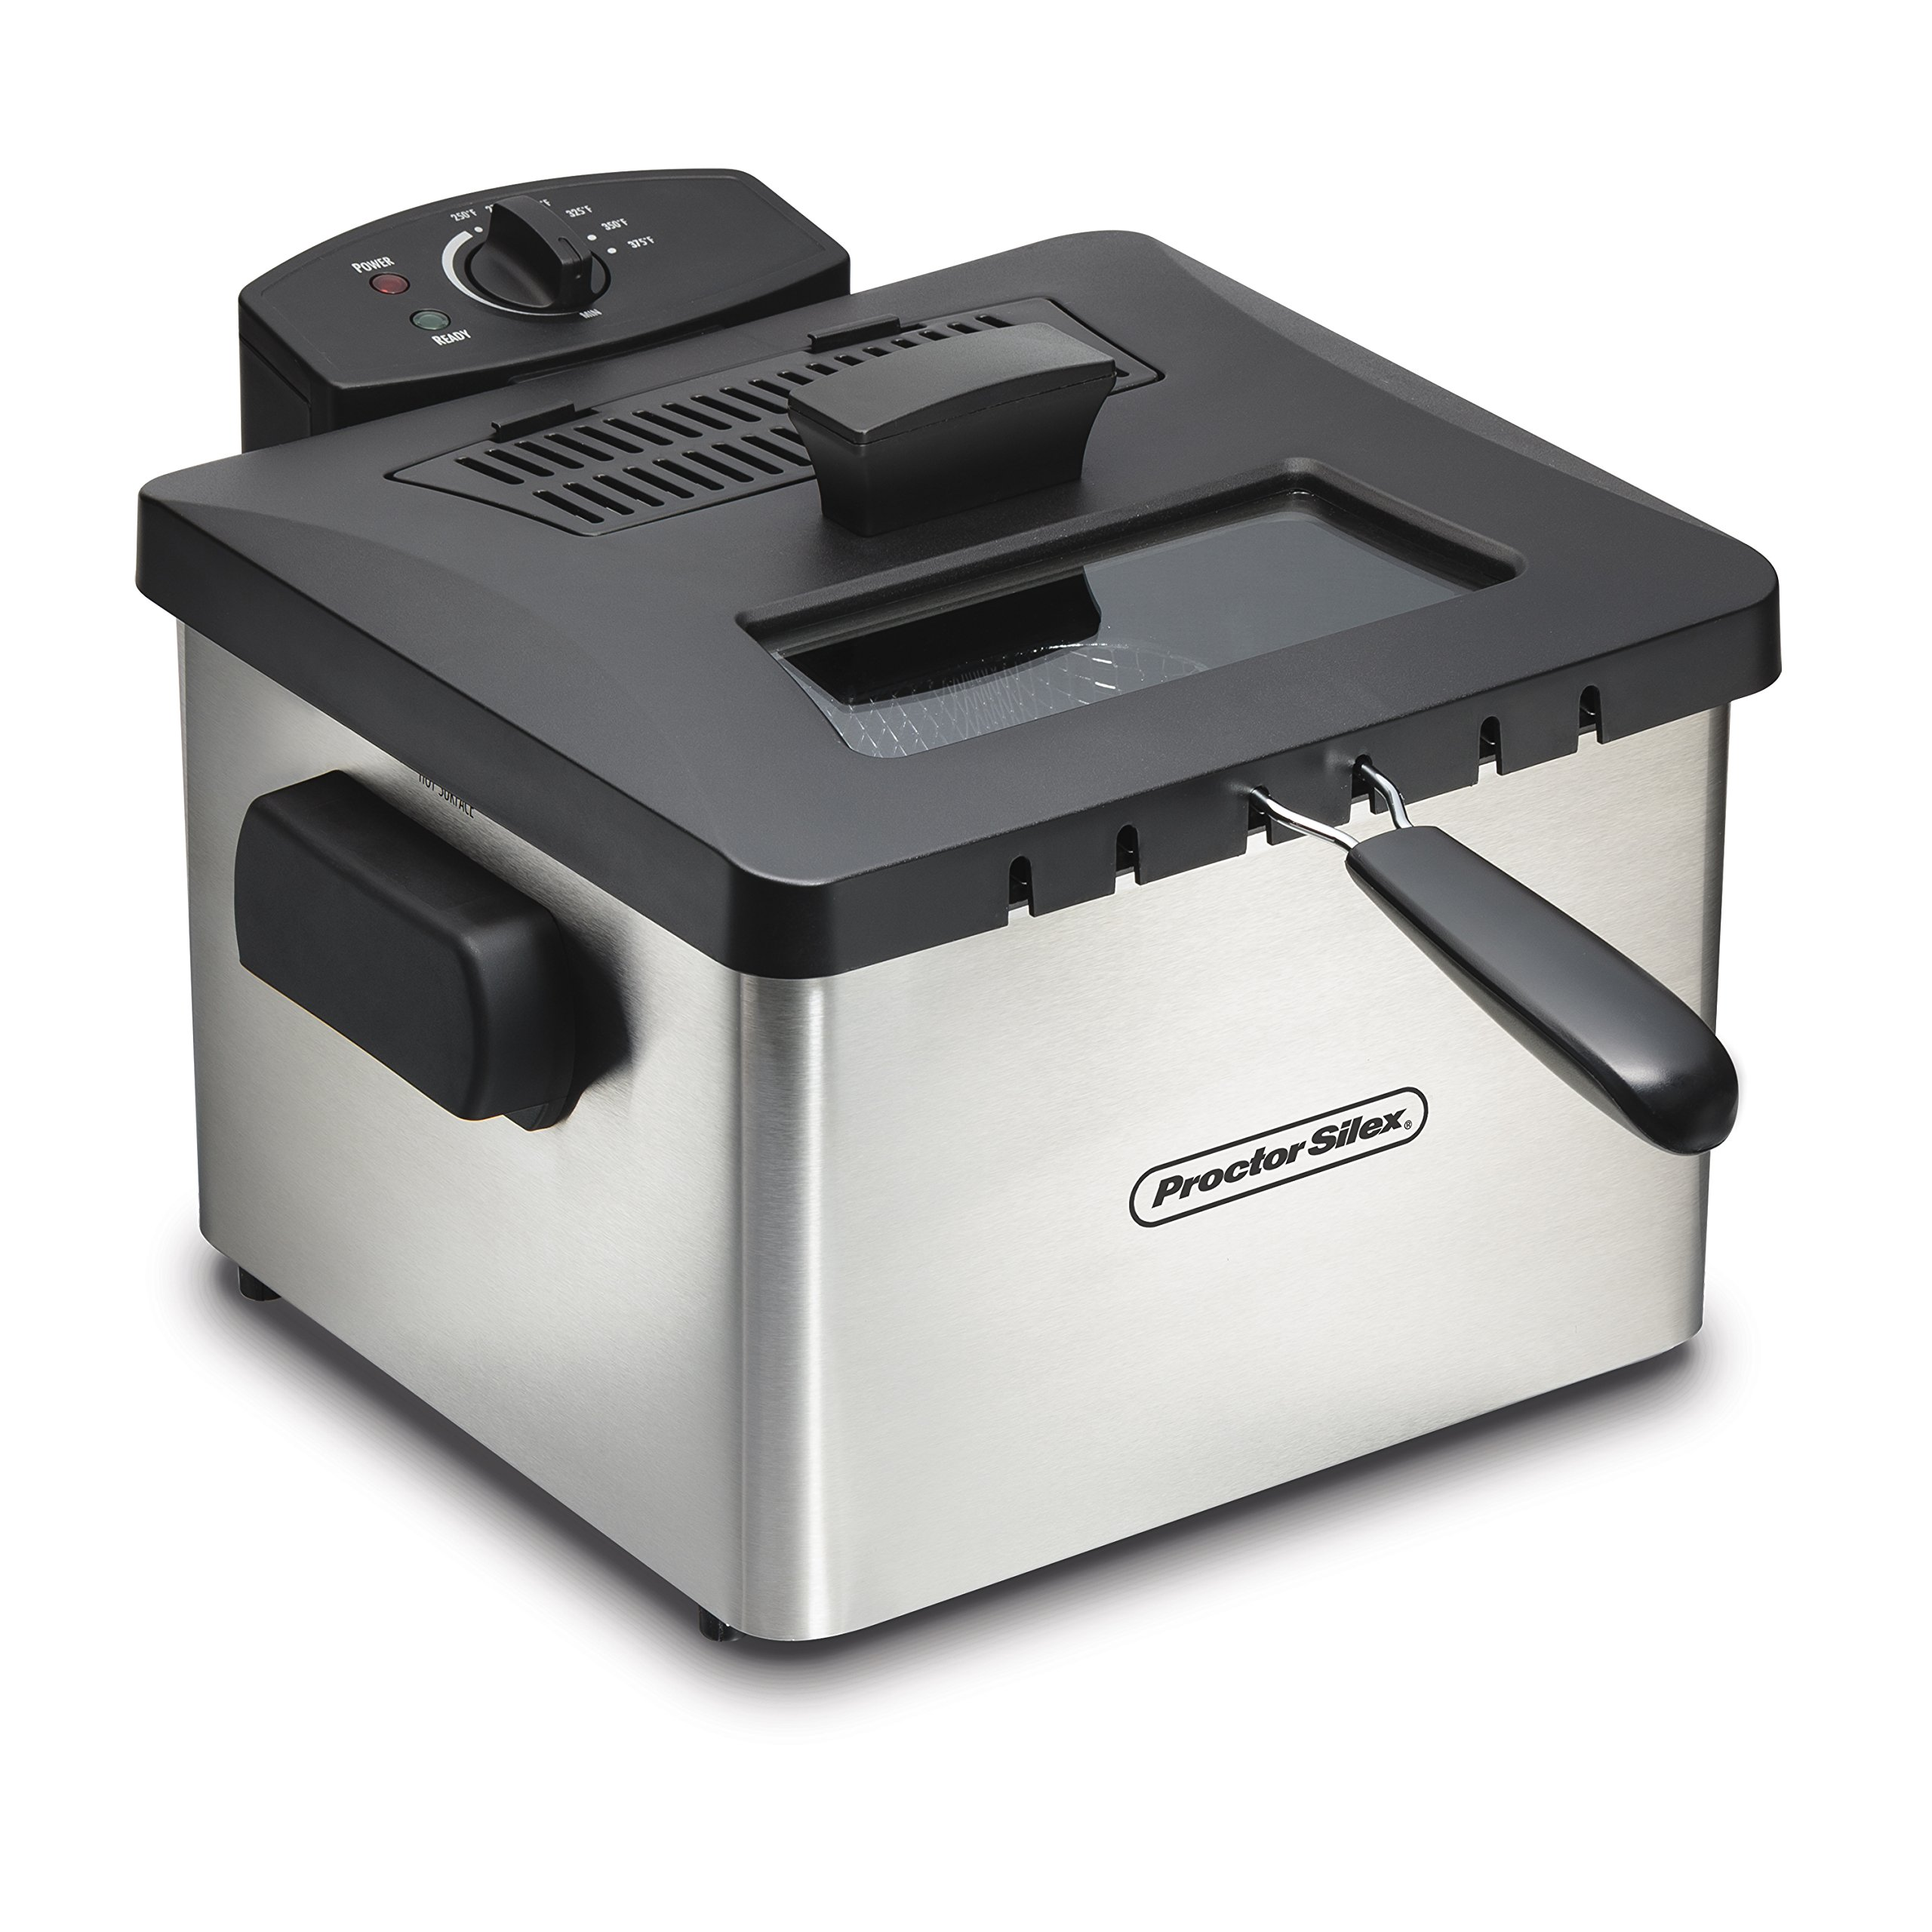 Proctor Silex 35044 Professional-Style Deep Fryer with 5 L Capacity, Silver